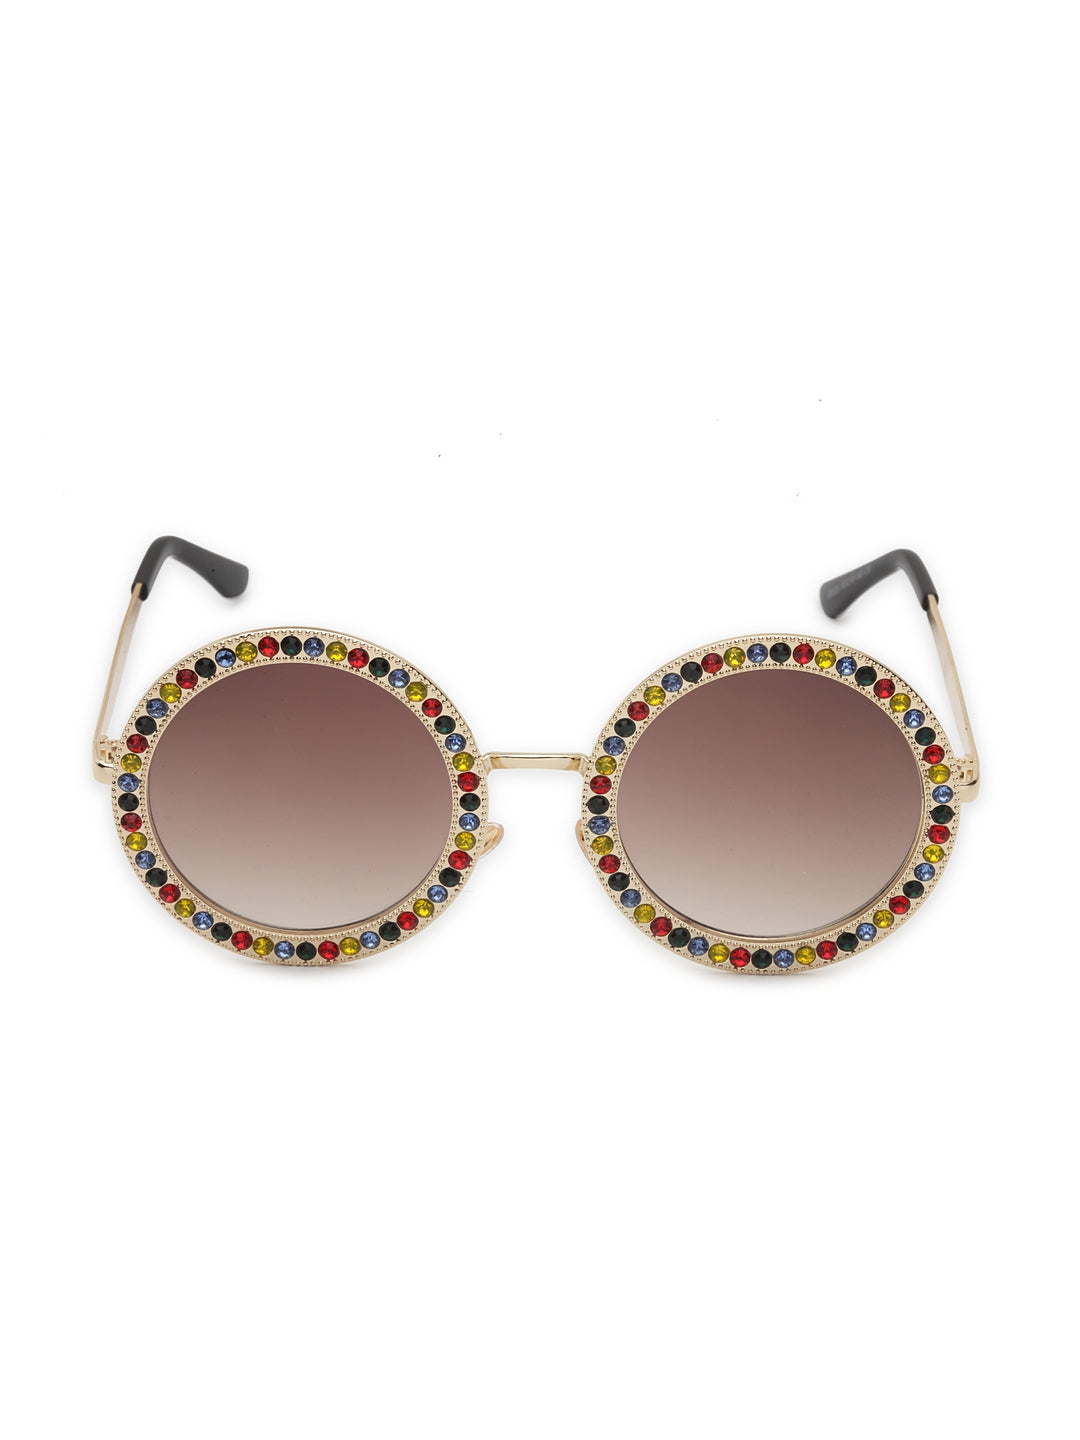 Avant-Garde Paris Cool Colorful Round Shape Sunglasses